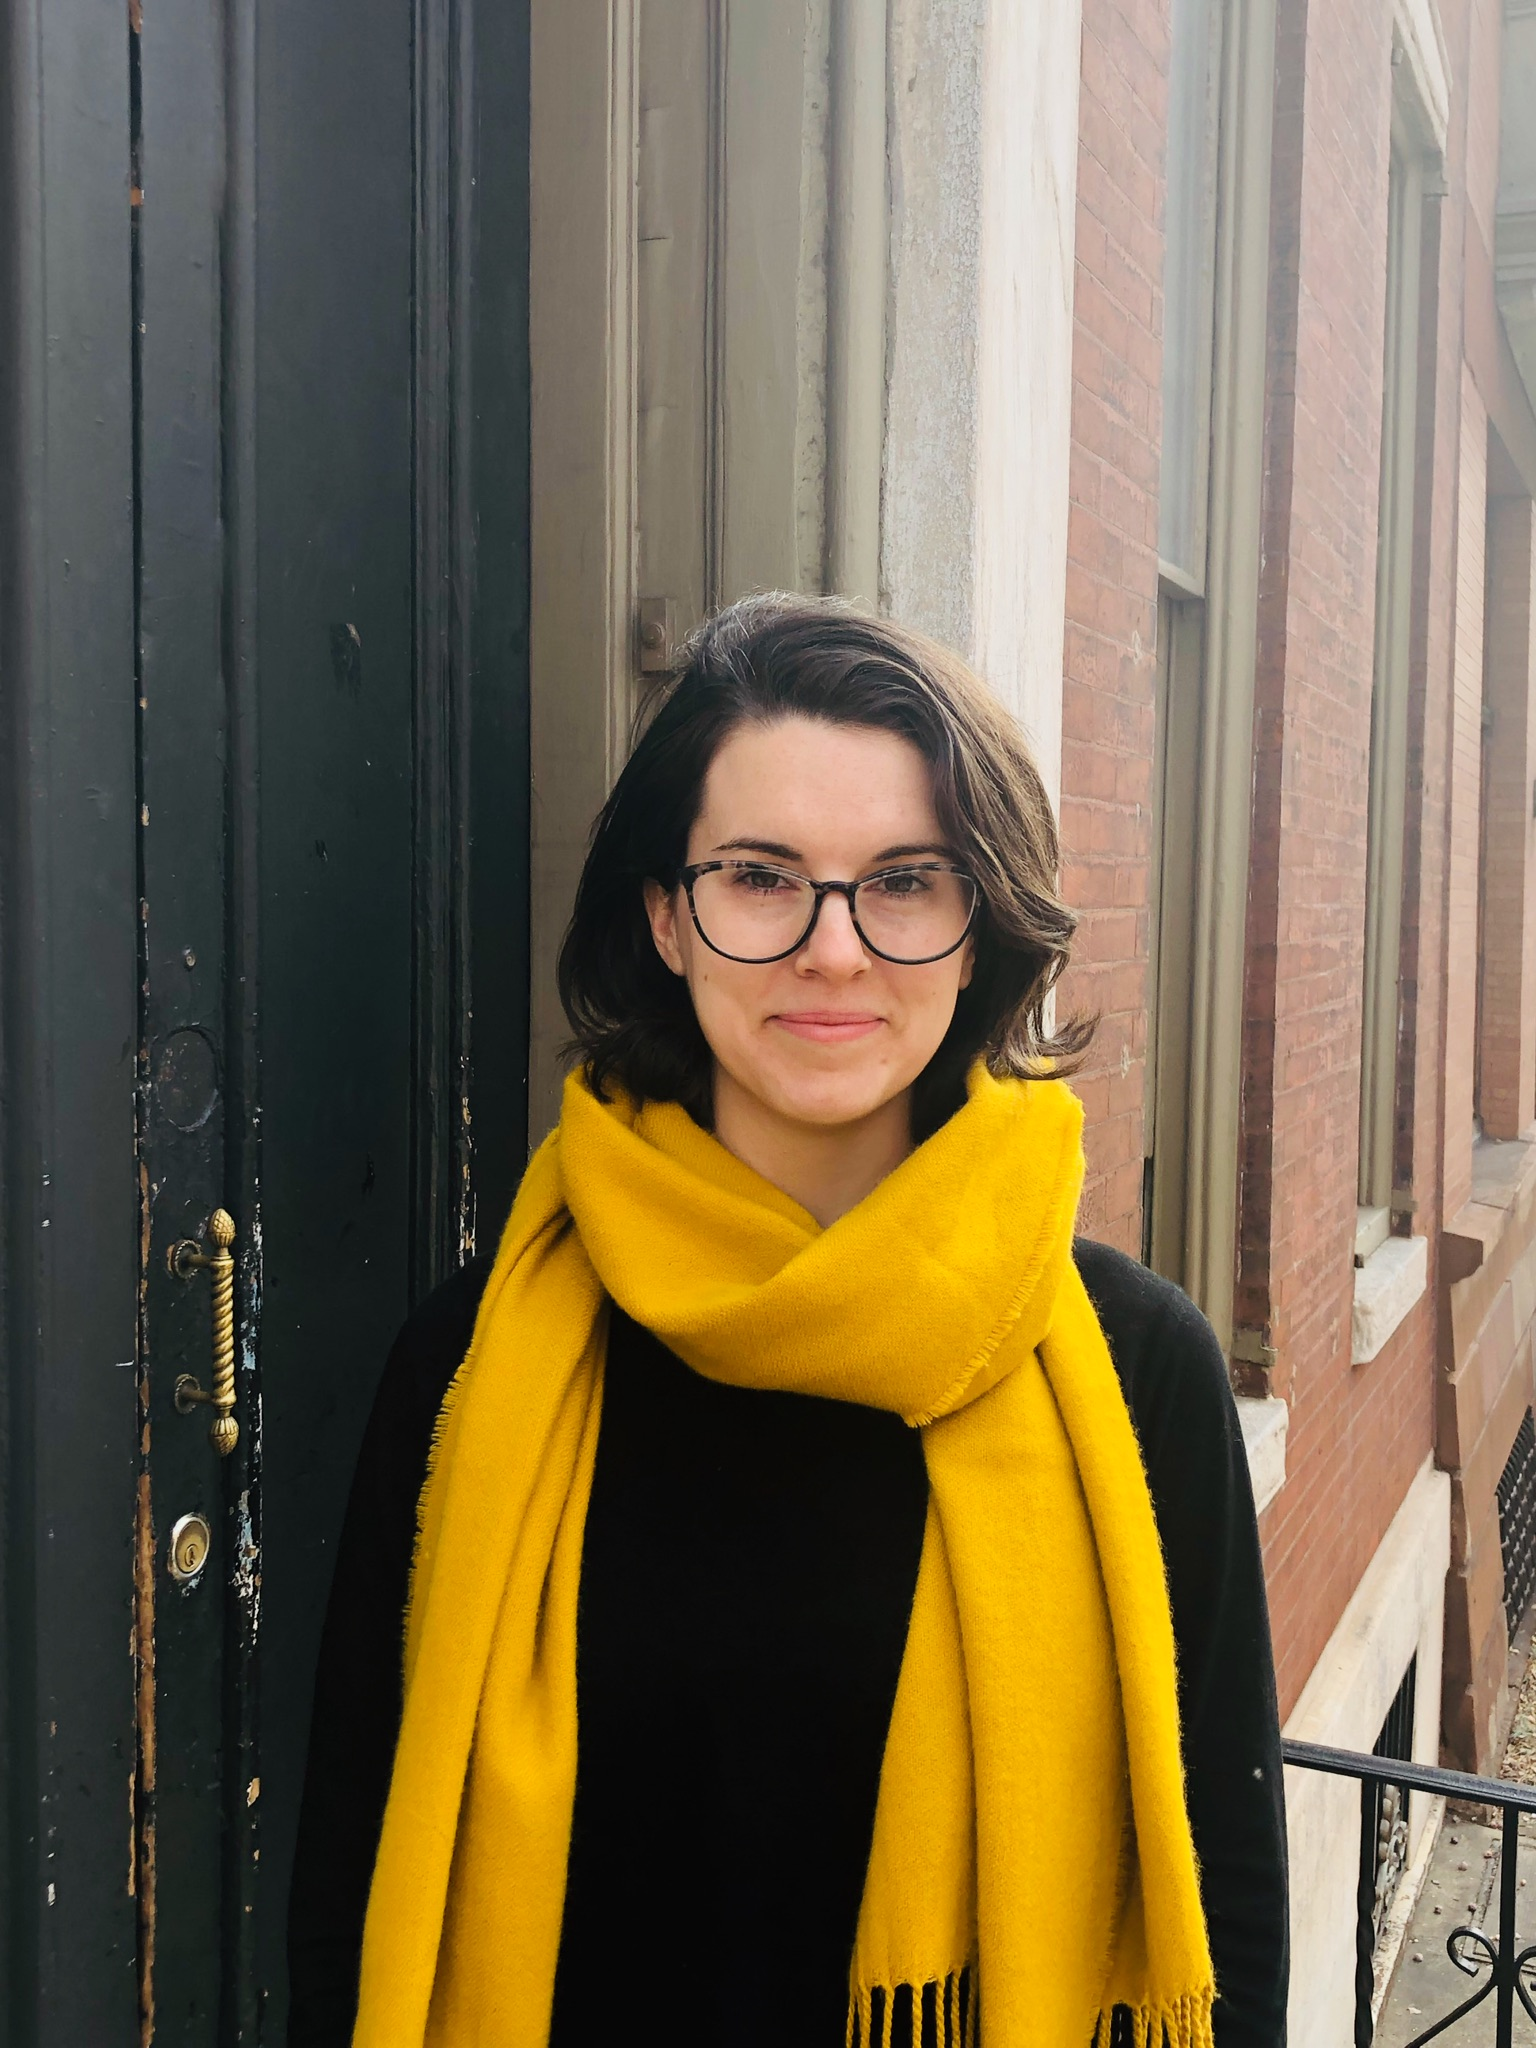 Embry Wood Owen, a white woman wearing glasses and a yellow scarf